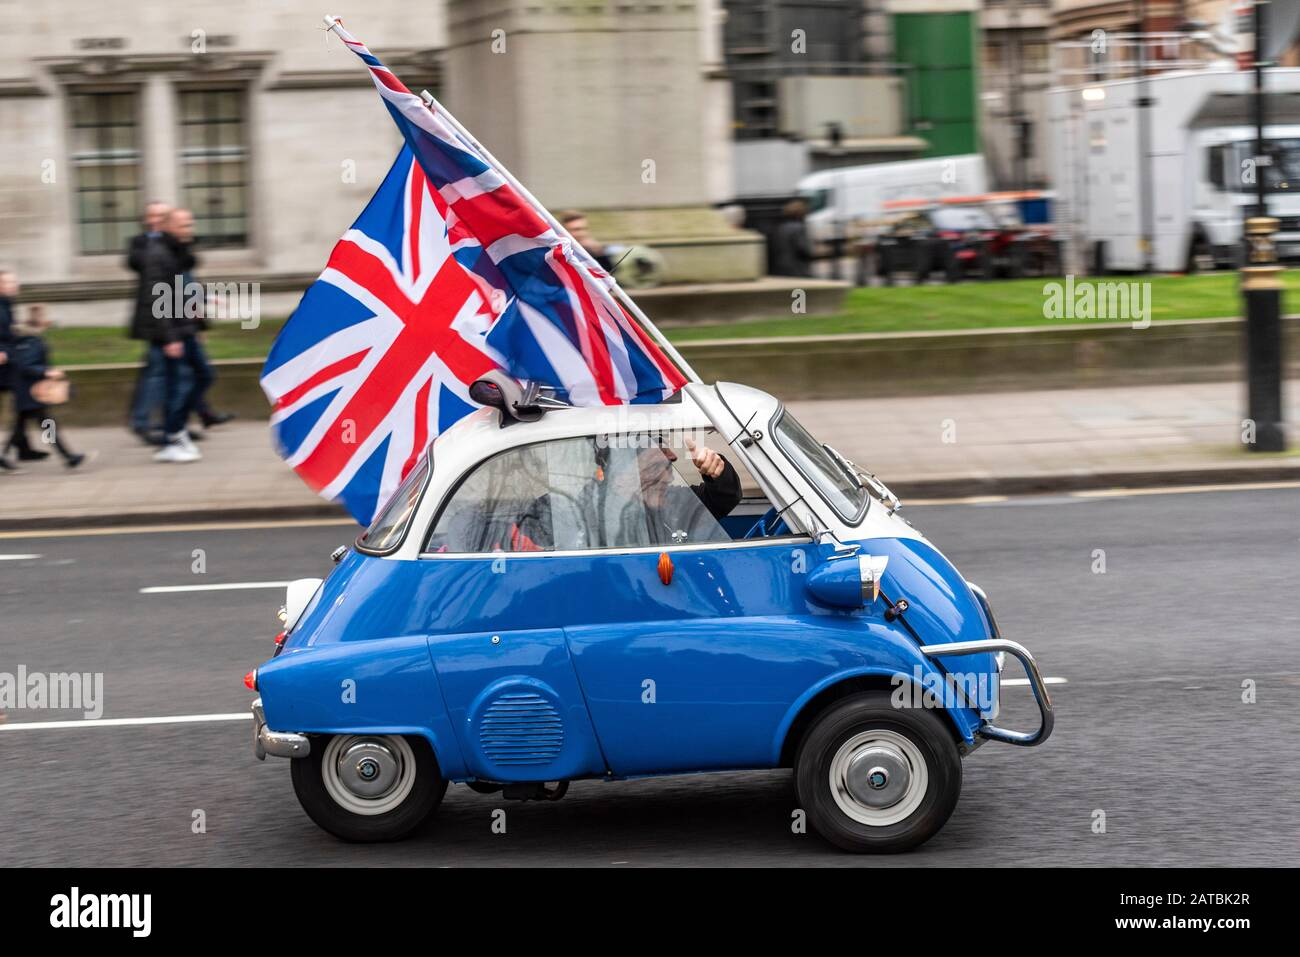 bmw-isetta-microcar-driving-around-parliament-square-on-brexit-day-31-january-2020-in-london-uk-with-union-jack-flags-european-bubble-car-2ATBK2R.jpg